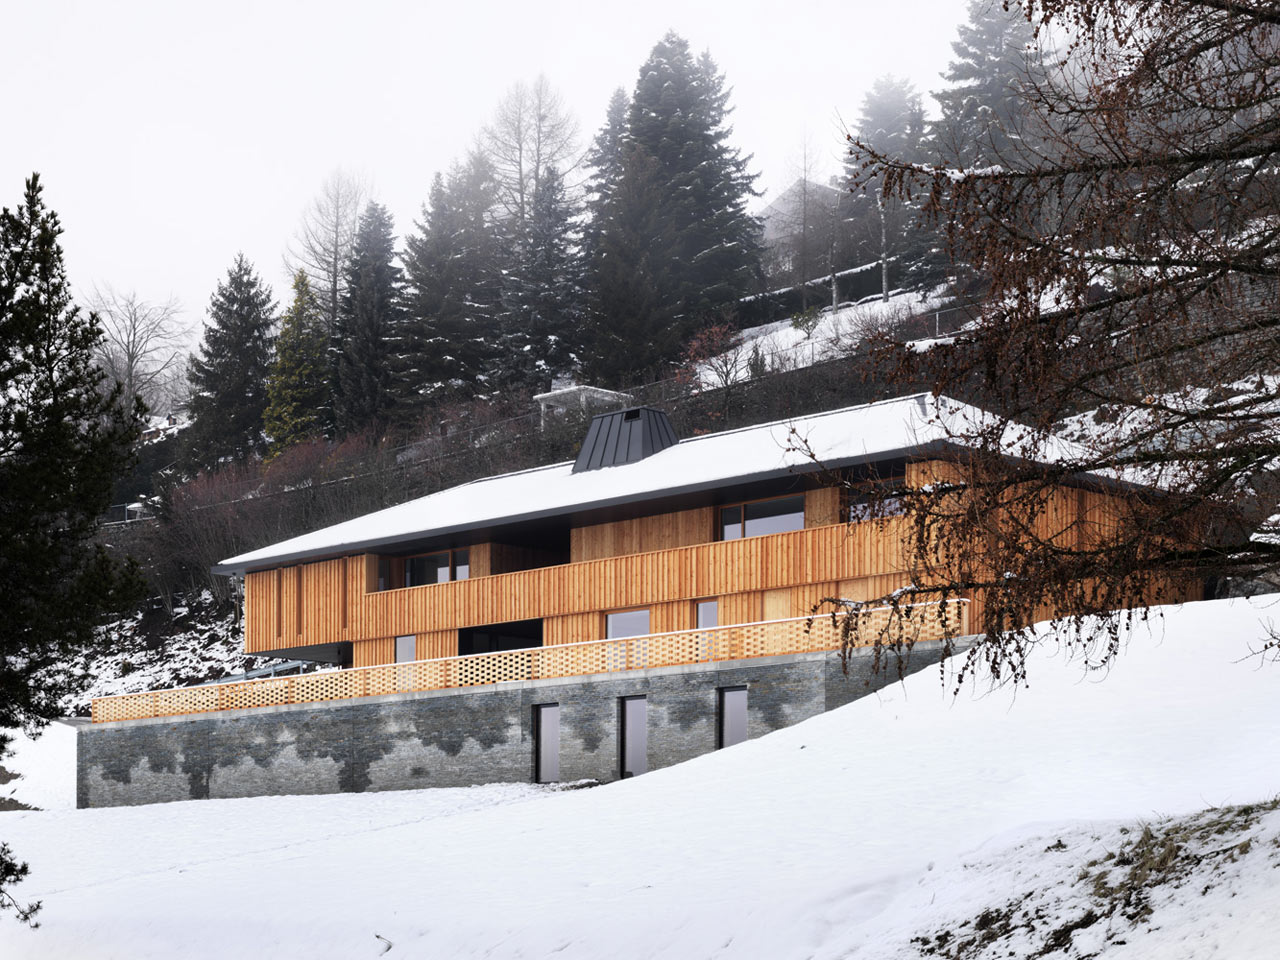 Contemporary-Alpine-House-Ralph-Germann-1